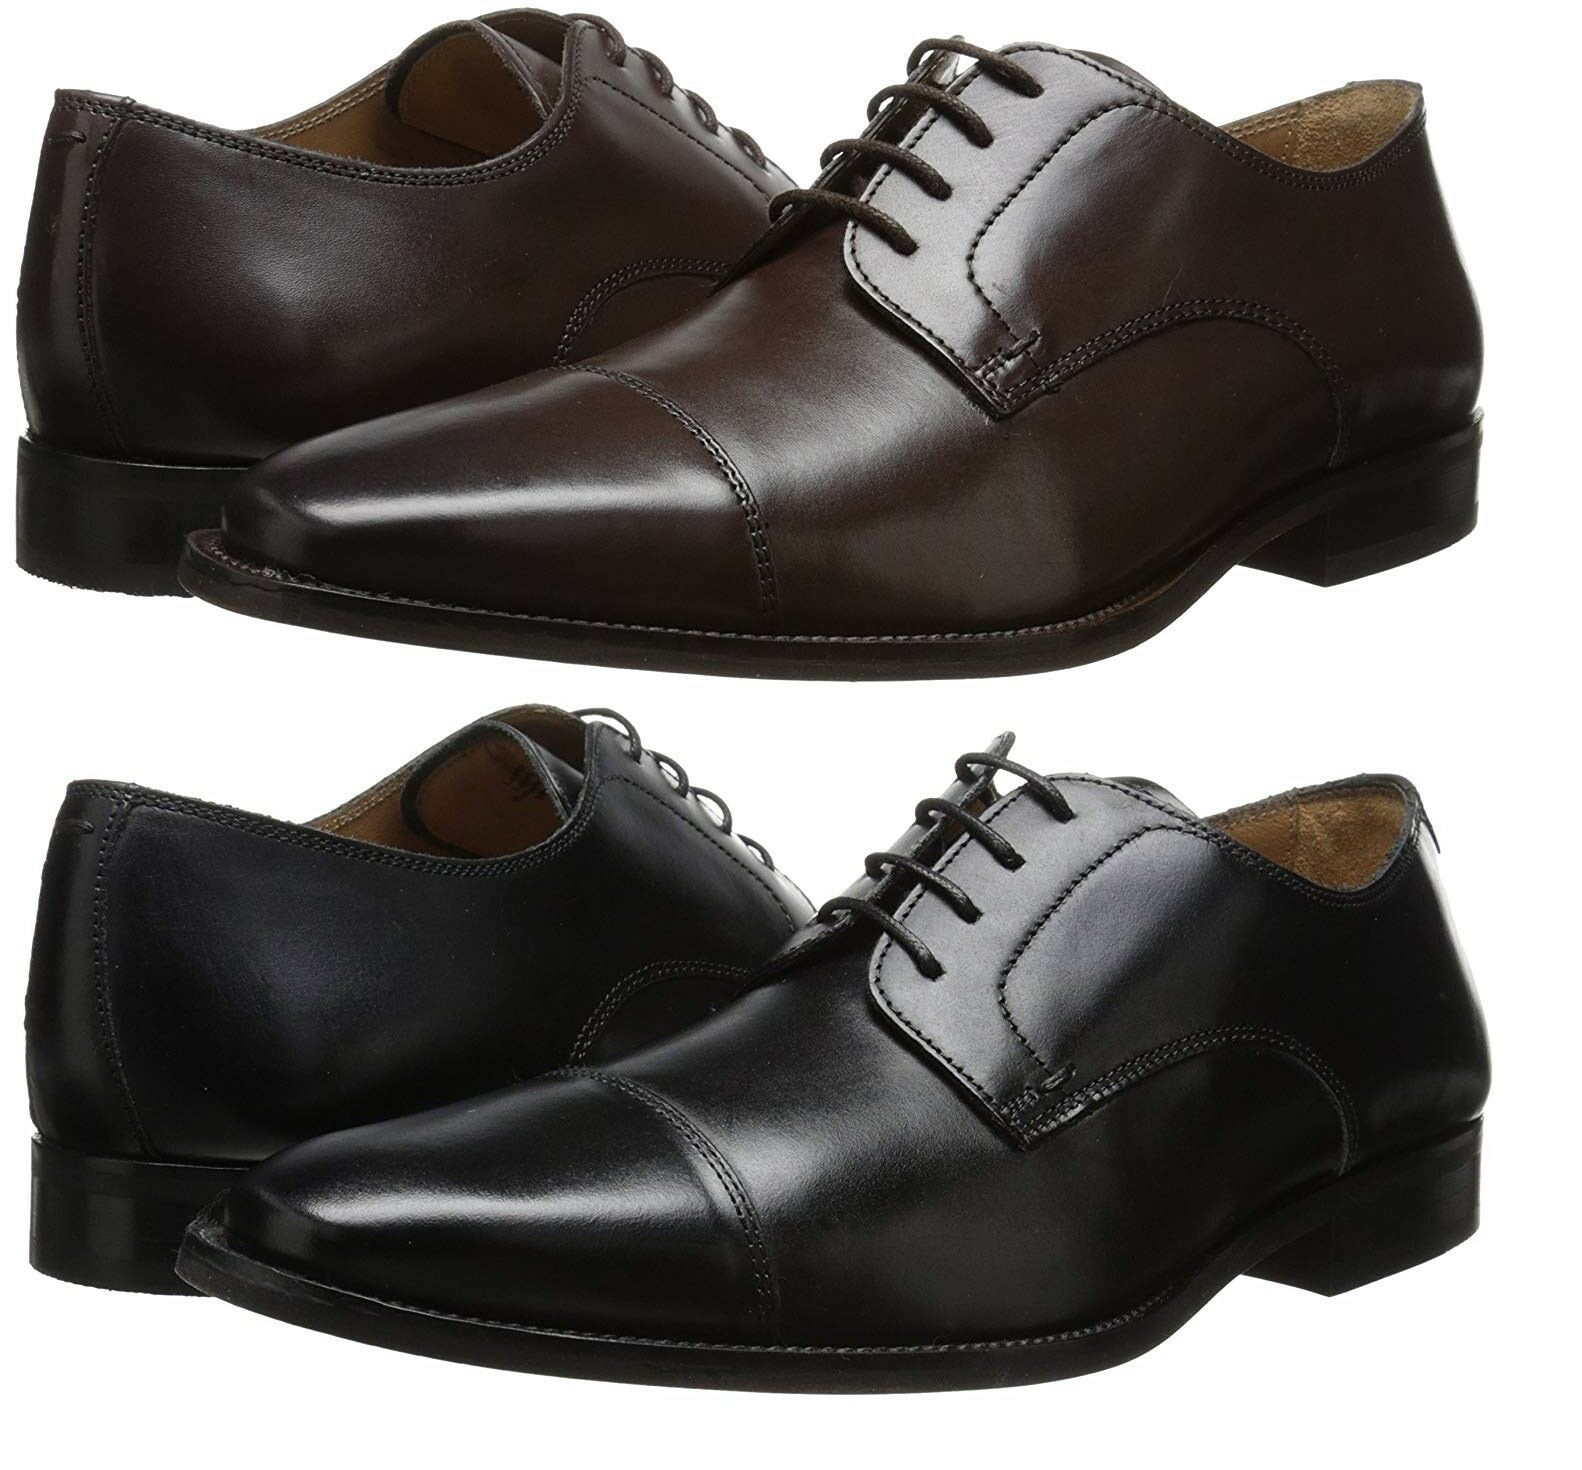 Florsheim Men's Sabato Cap Toe Oxfords Premium Leather Dress Shoes NEW